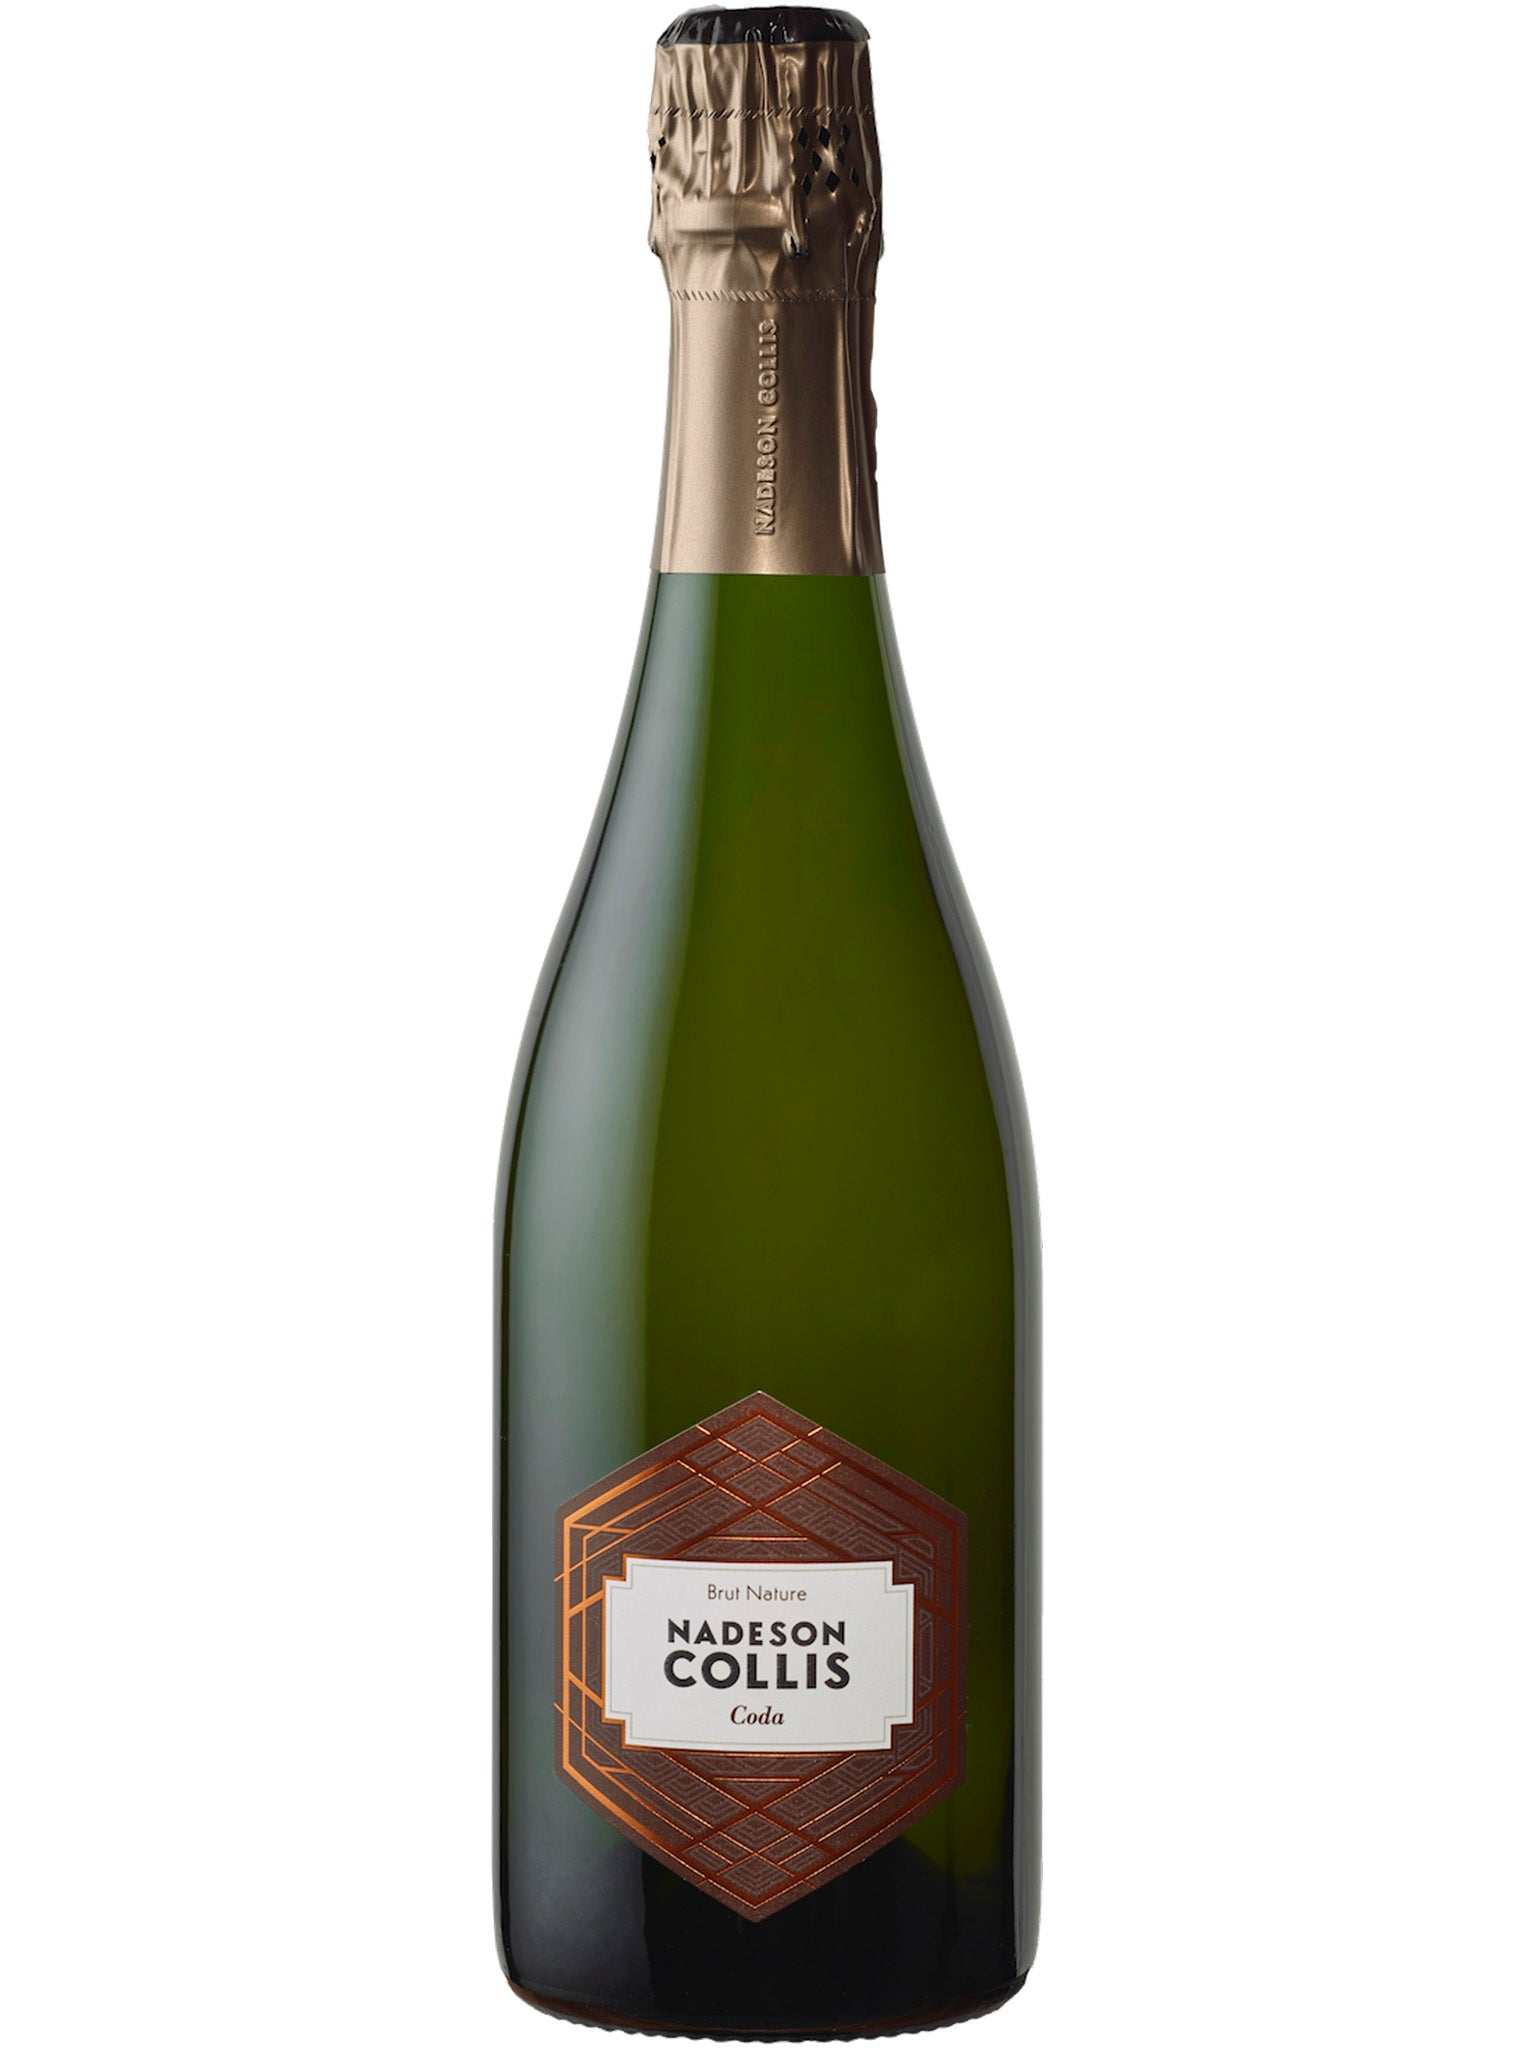 Nadeson Collis Coda Brut Nature 6Pk Nv